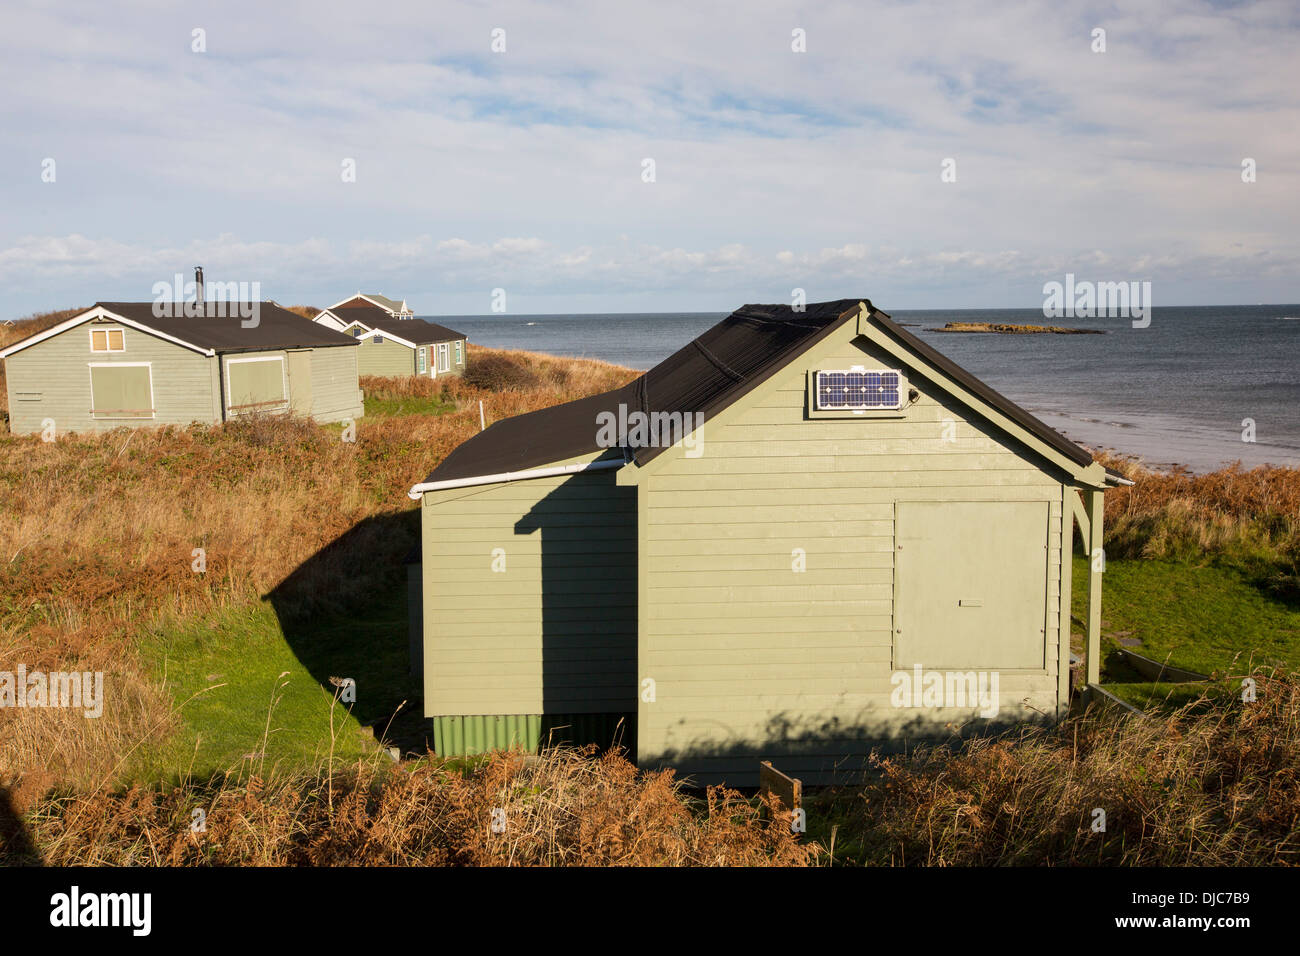 Micro Chalet Stock Photos Micro Chalet Stock Images Alamy